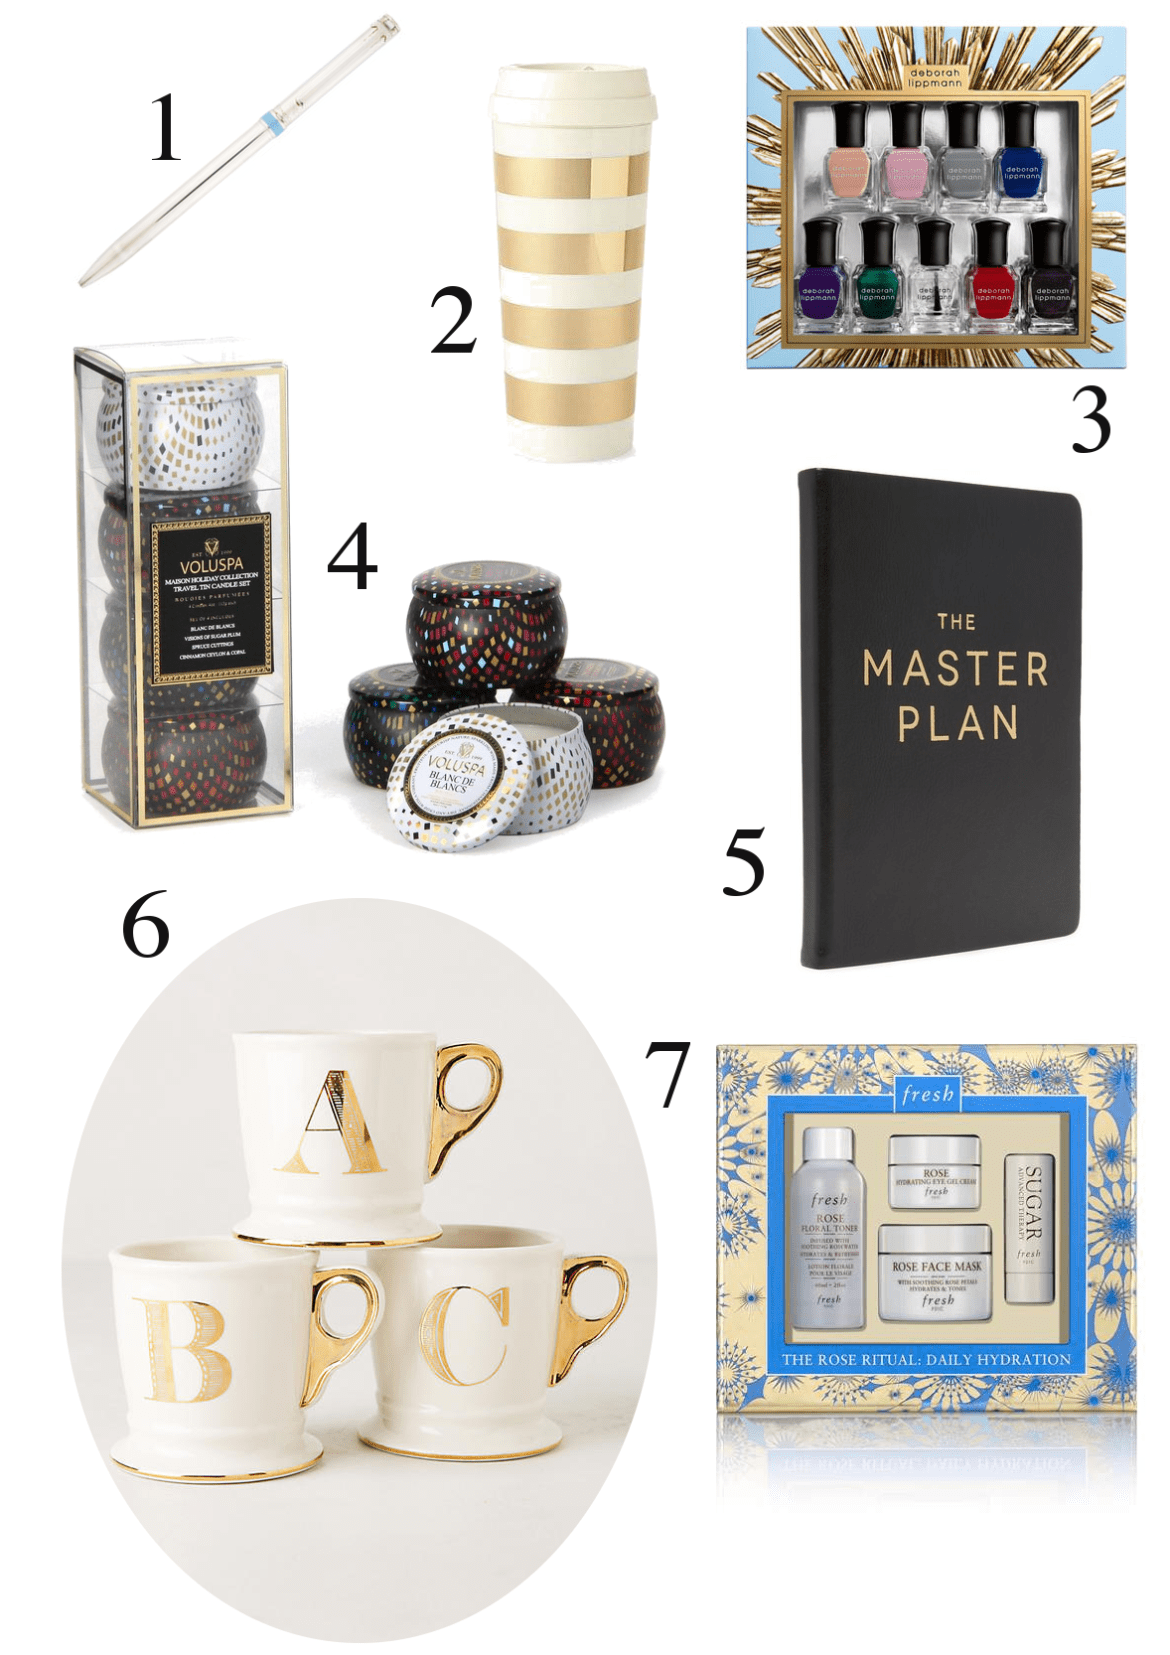 LAST MINUTE GIFT GUIDE by Fashion in Flight